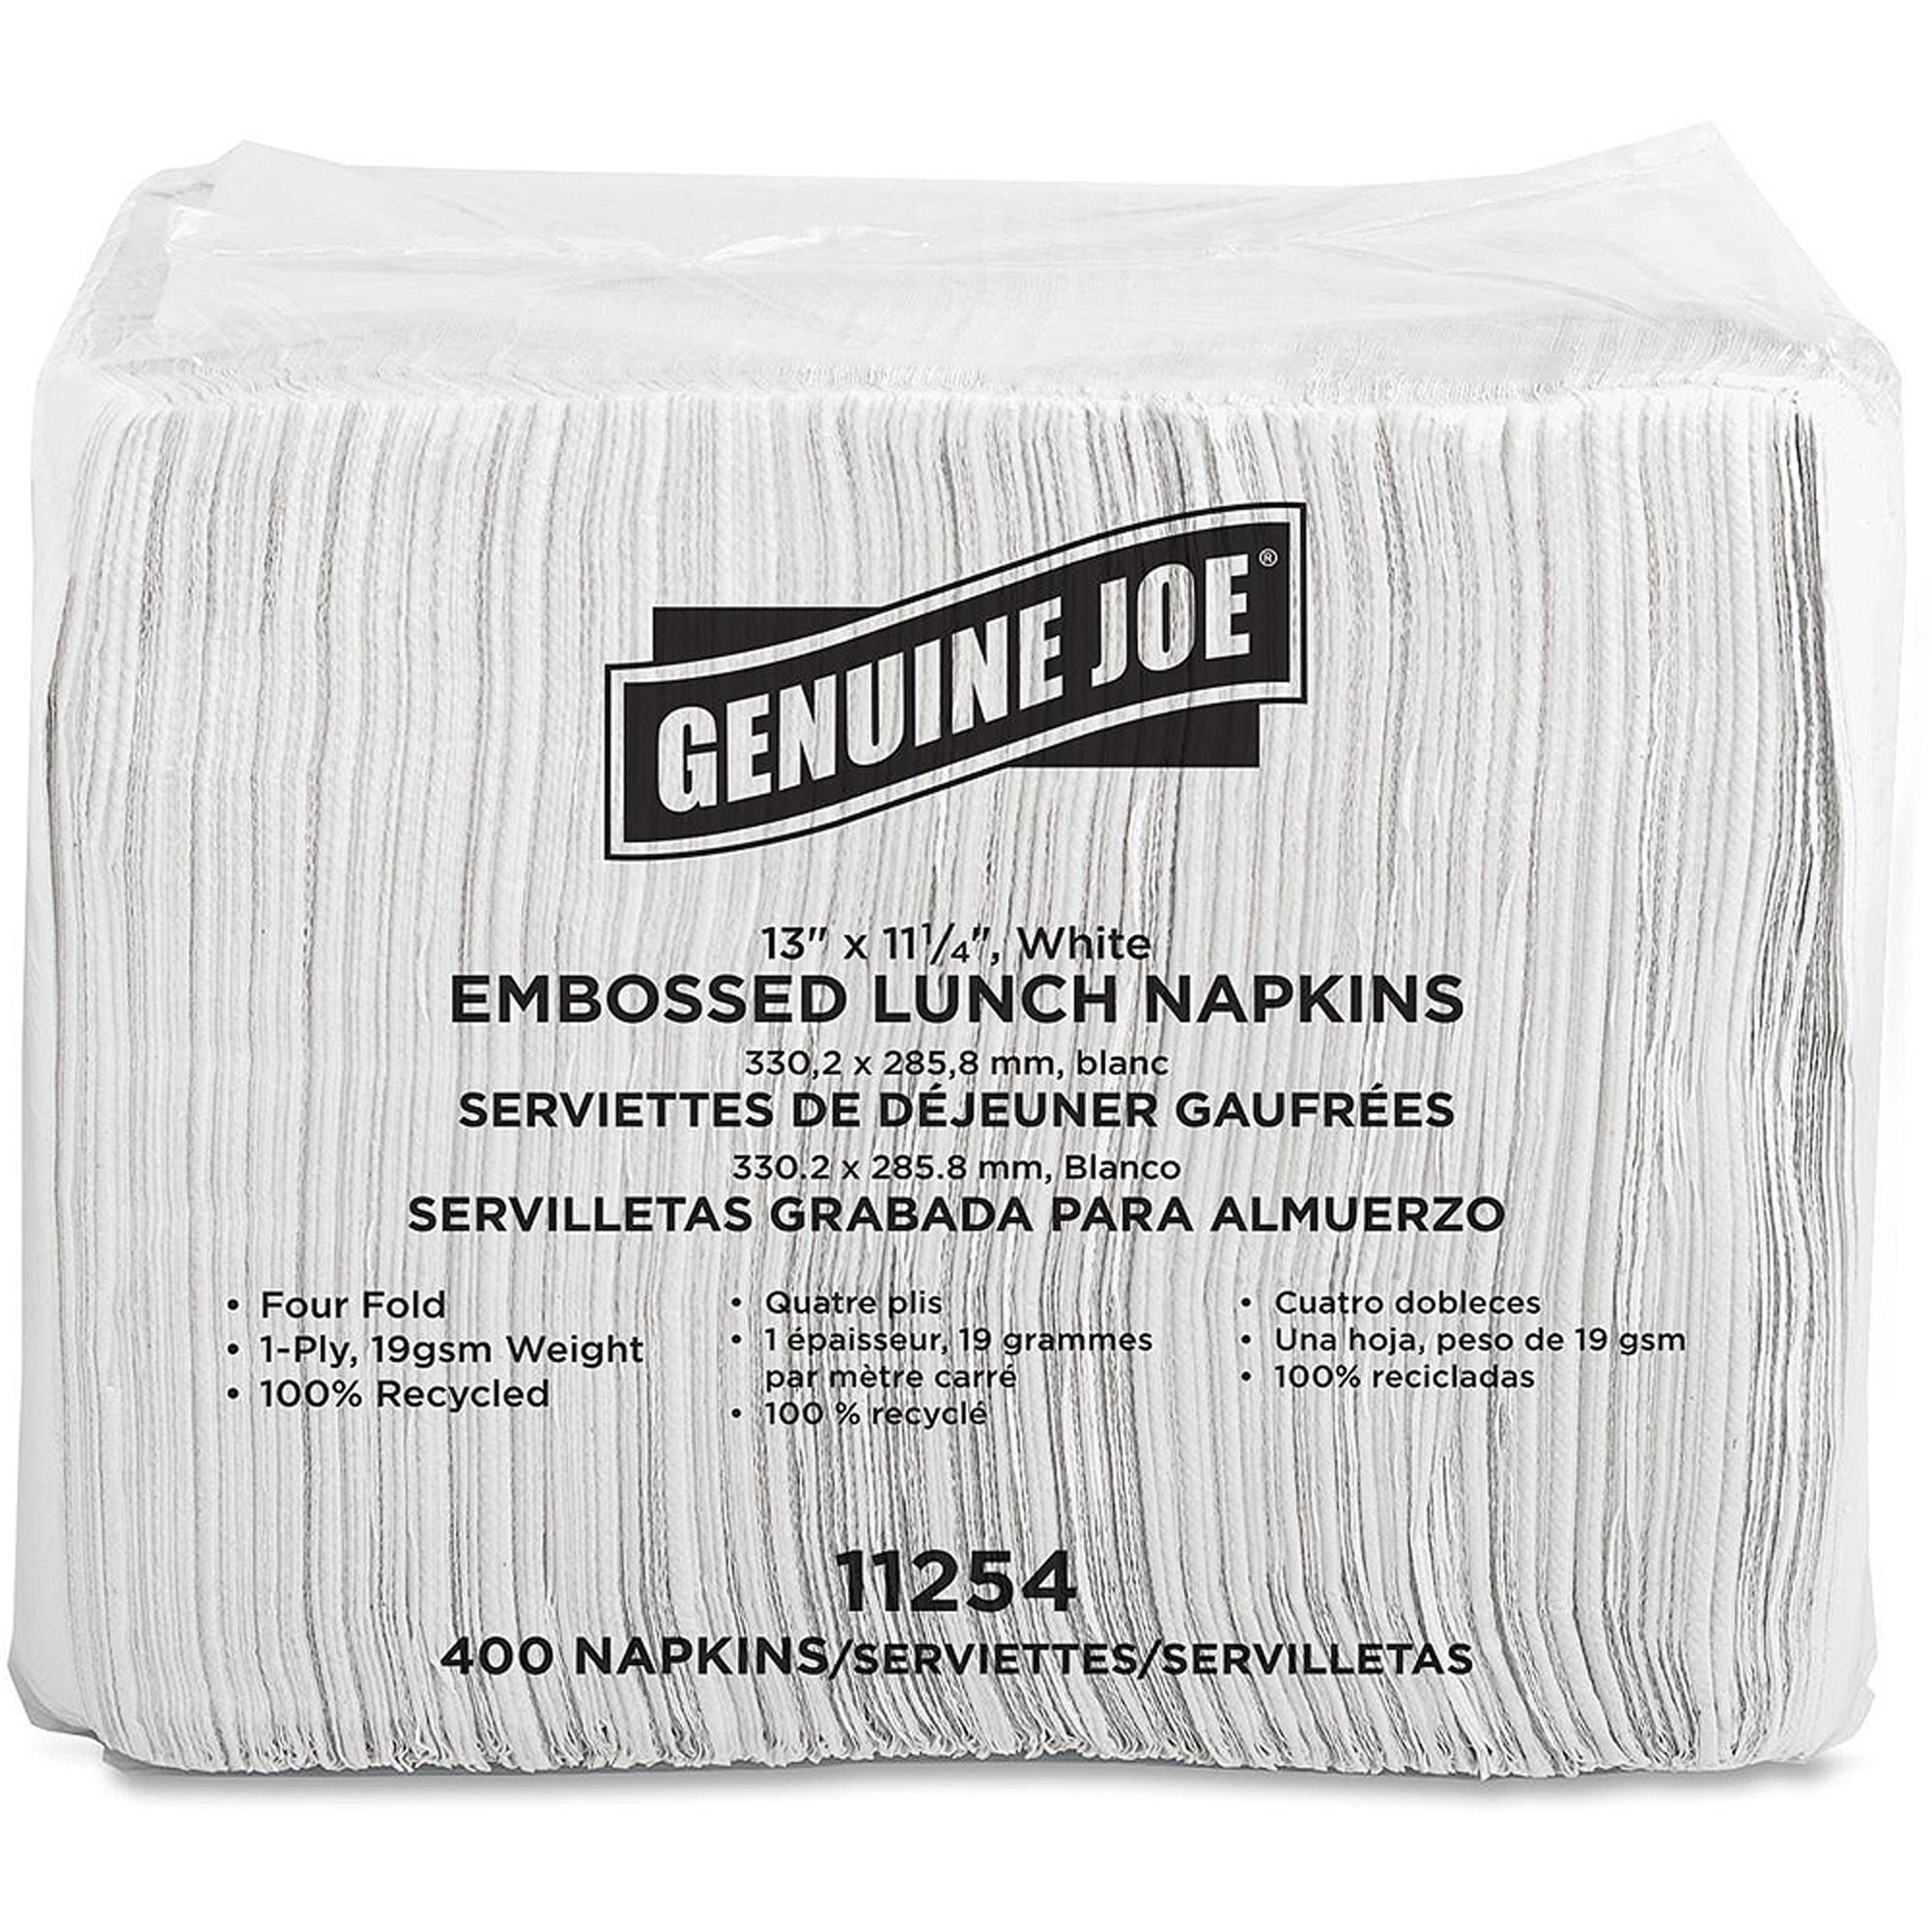 Genuine Joe Embossed Lunch Napkins, 400 count, (Pack of 6)